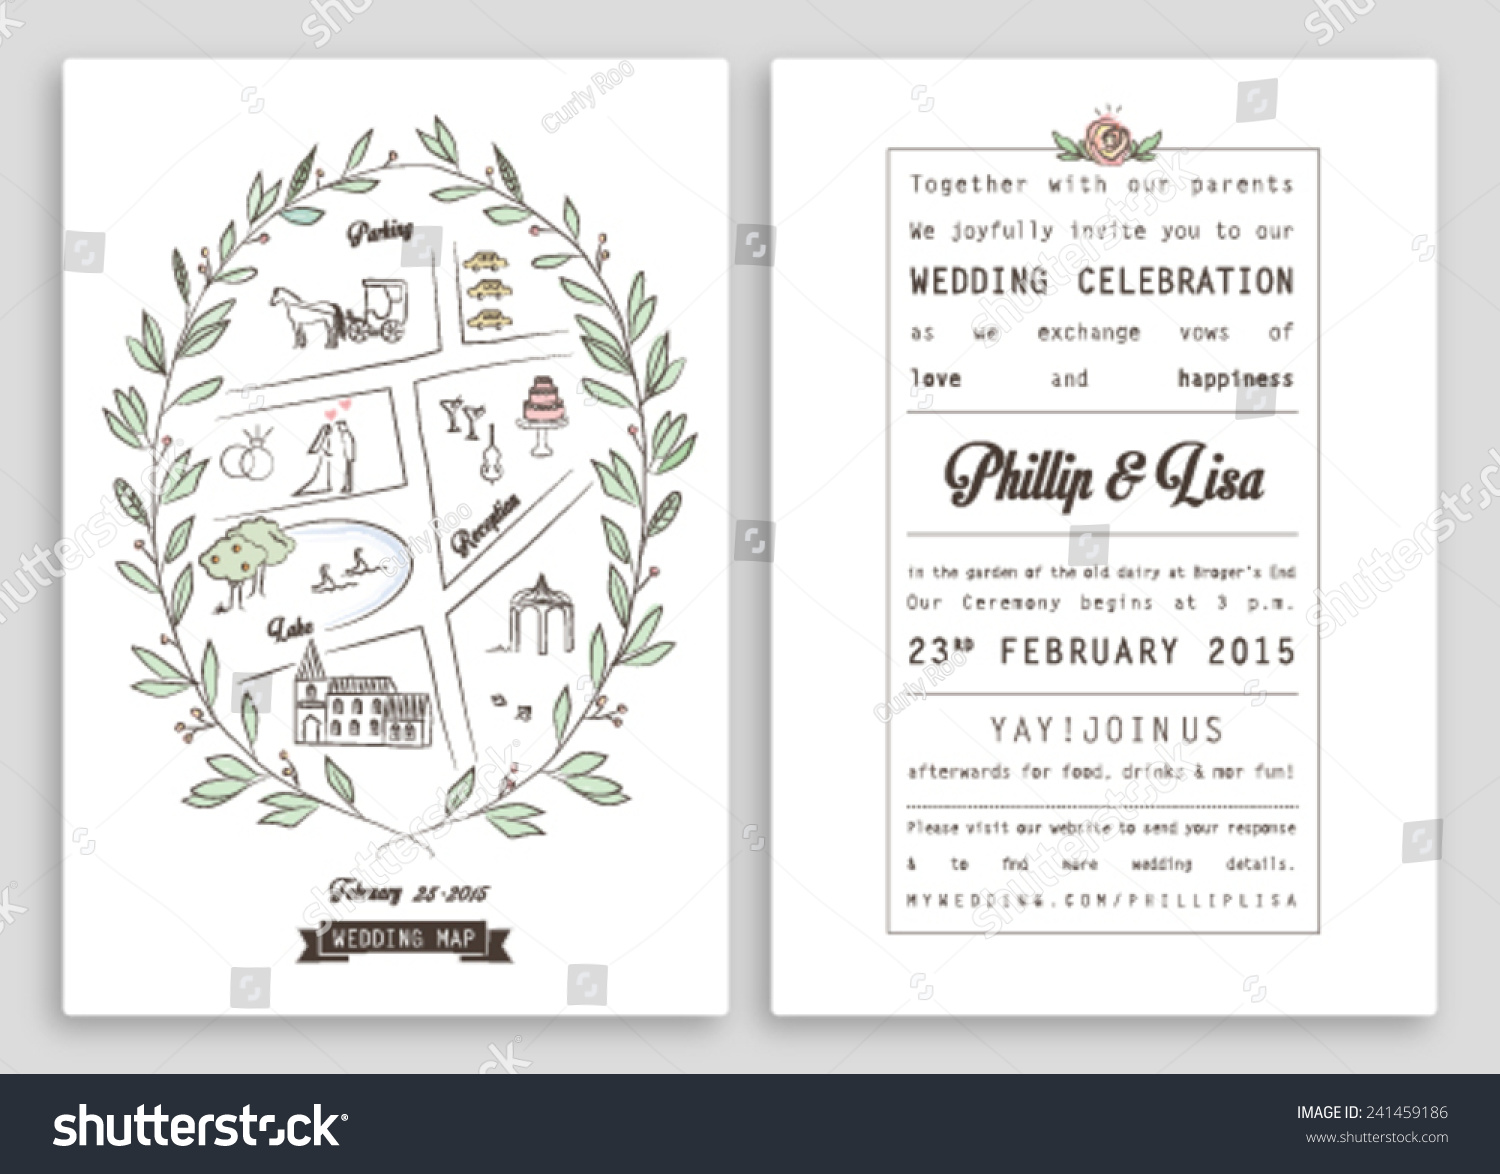 Wedding Invitation Template With Map Royal Invitation Design Nice Layout Stock Vector